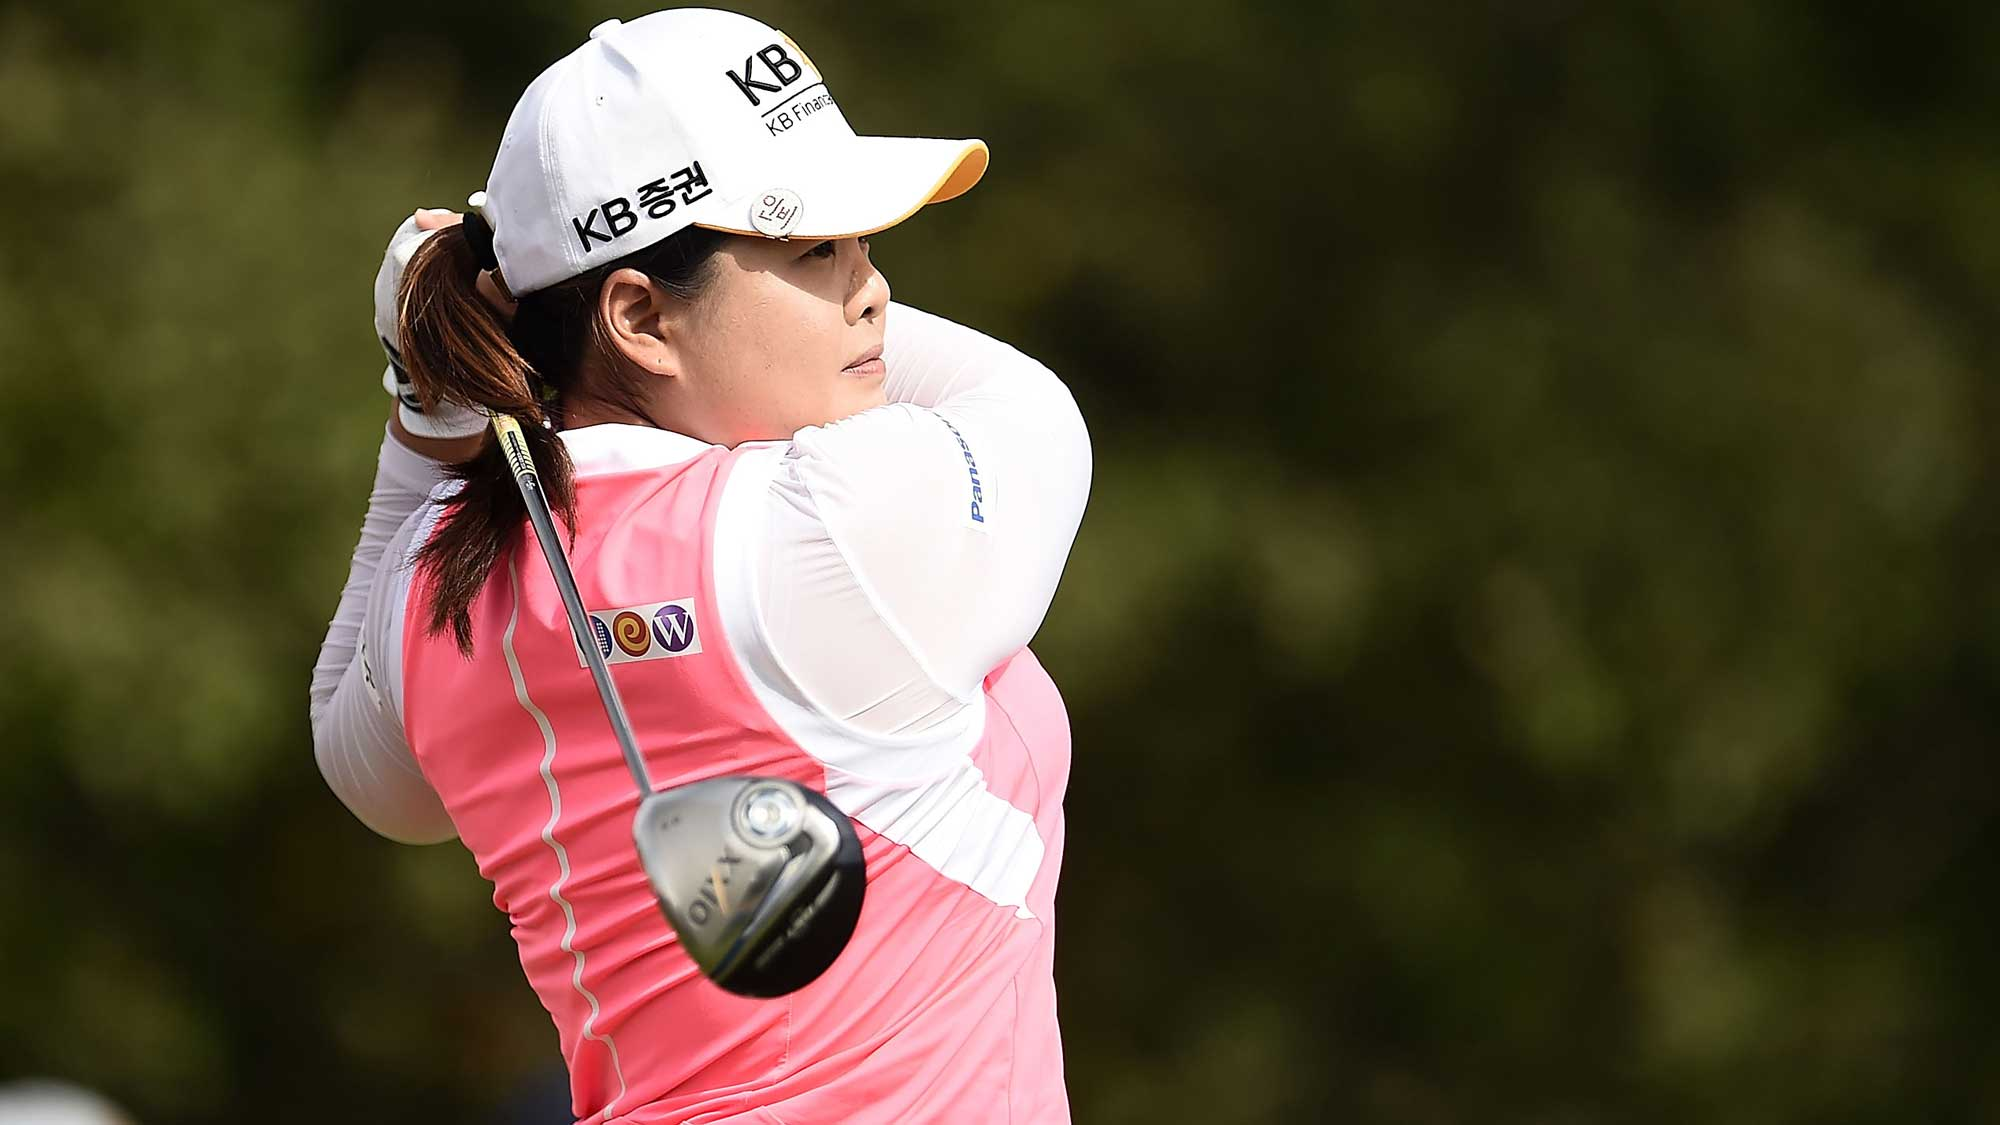 Inbee Park of South Korea hits her tee shot on the 16th hole during the second round of the Meijer LPGA Classic